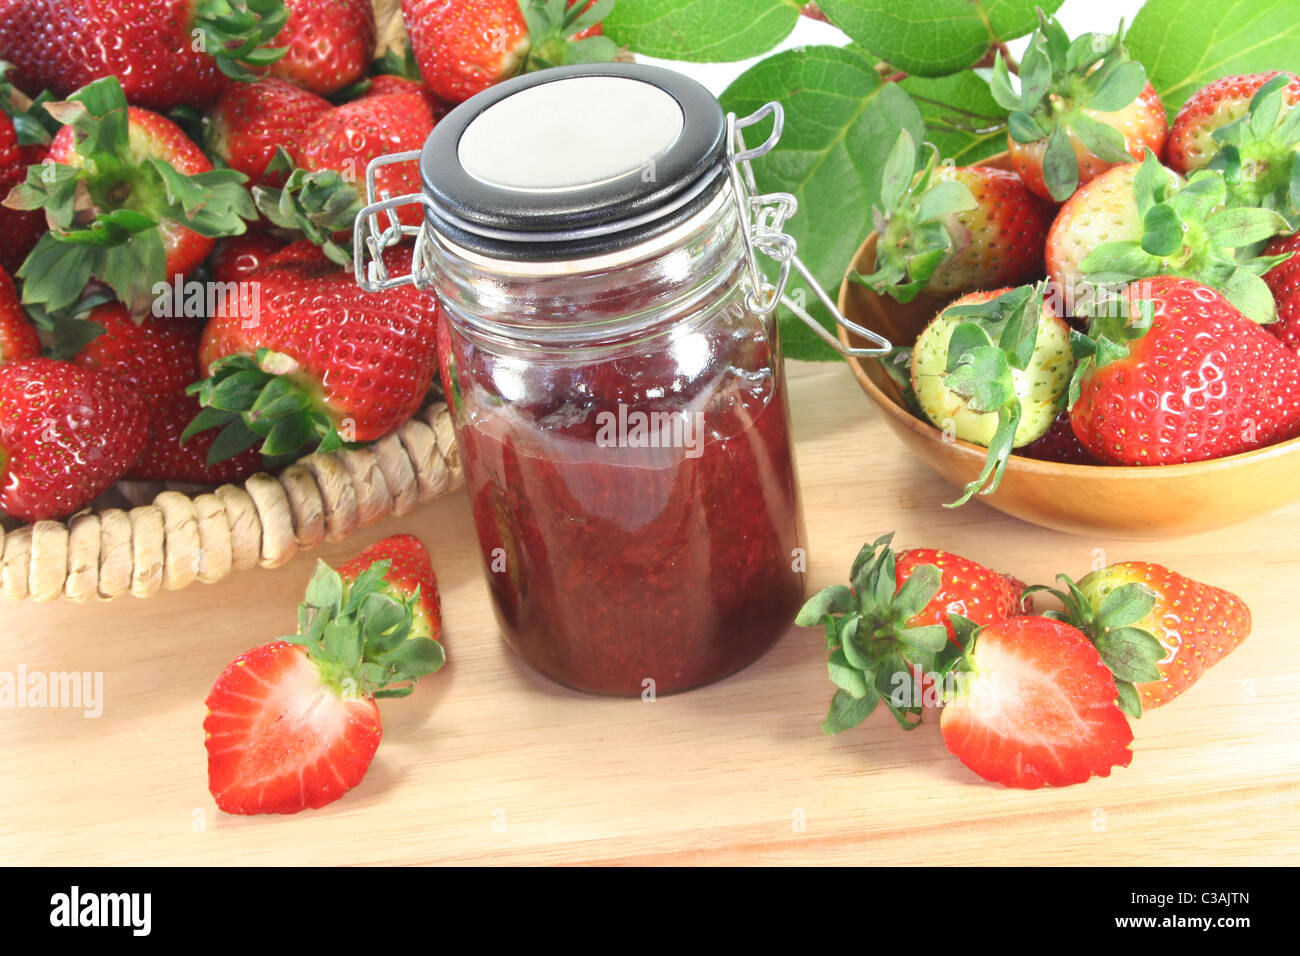 Strawberry jam with fresh strawberries on a wooden board - Stock Image